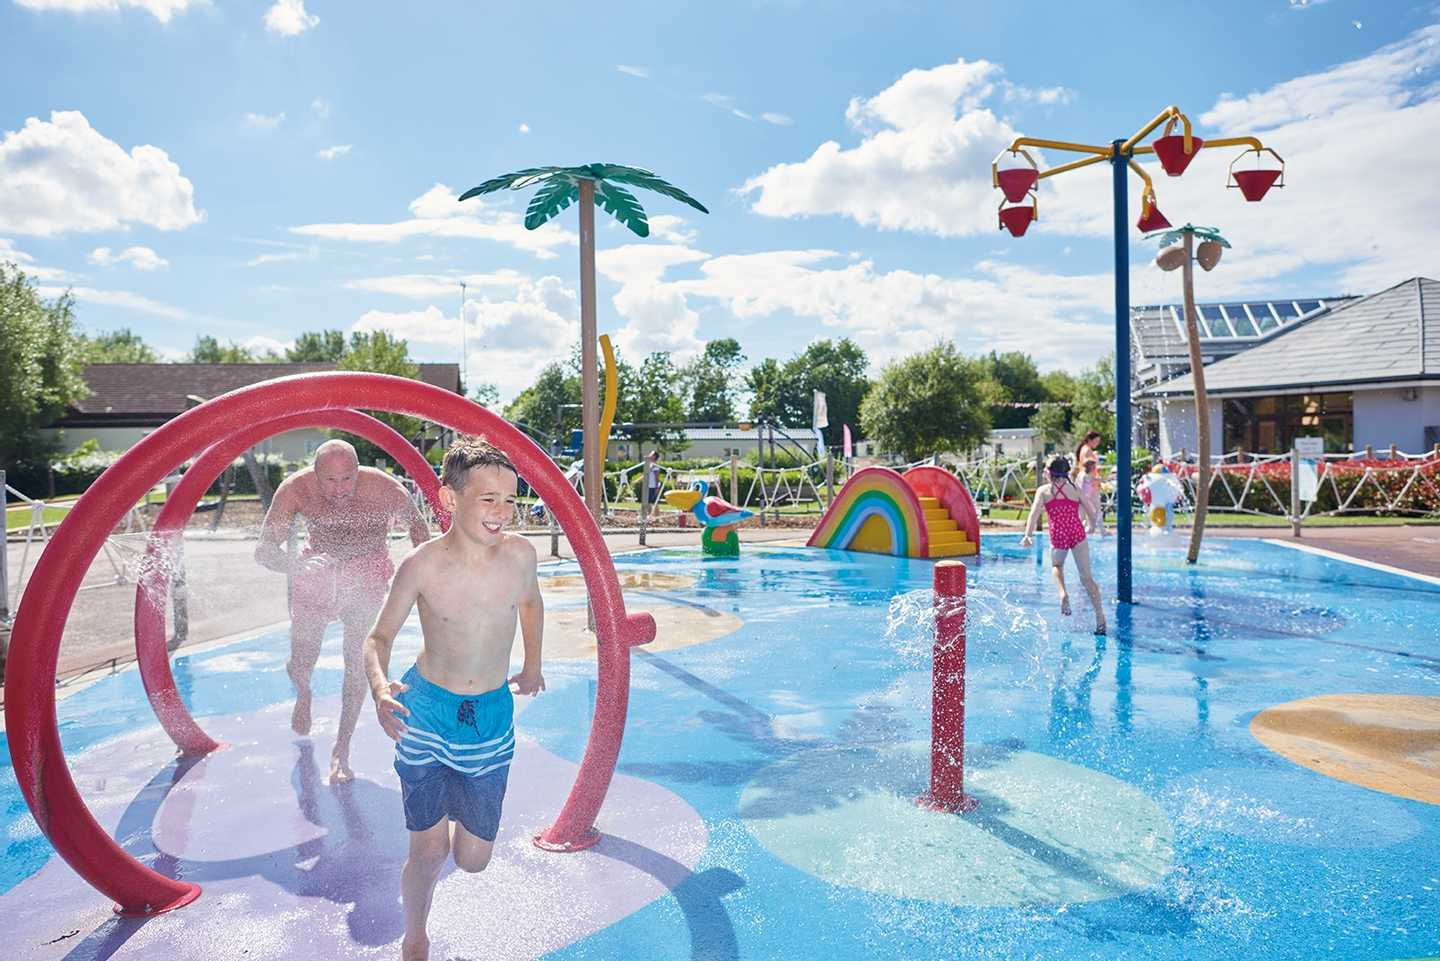 A boy and his father splashing through the outdoor SplashZone